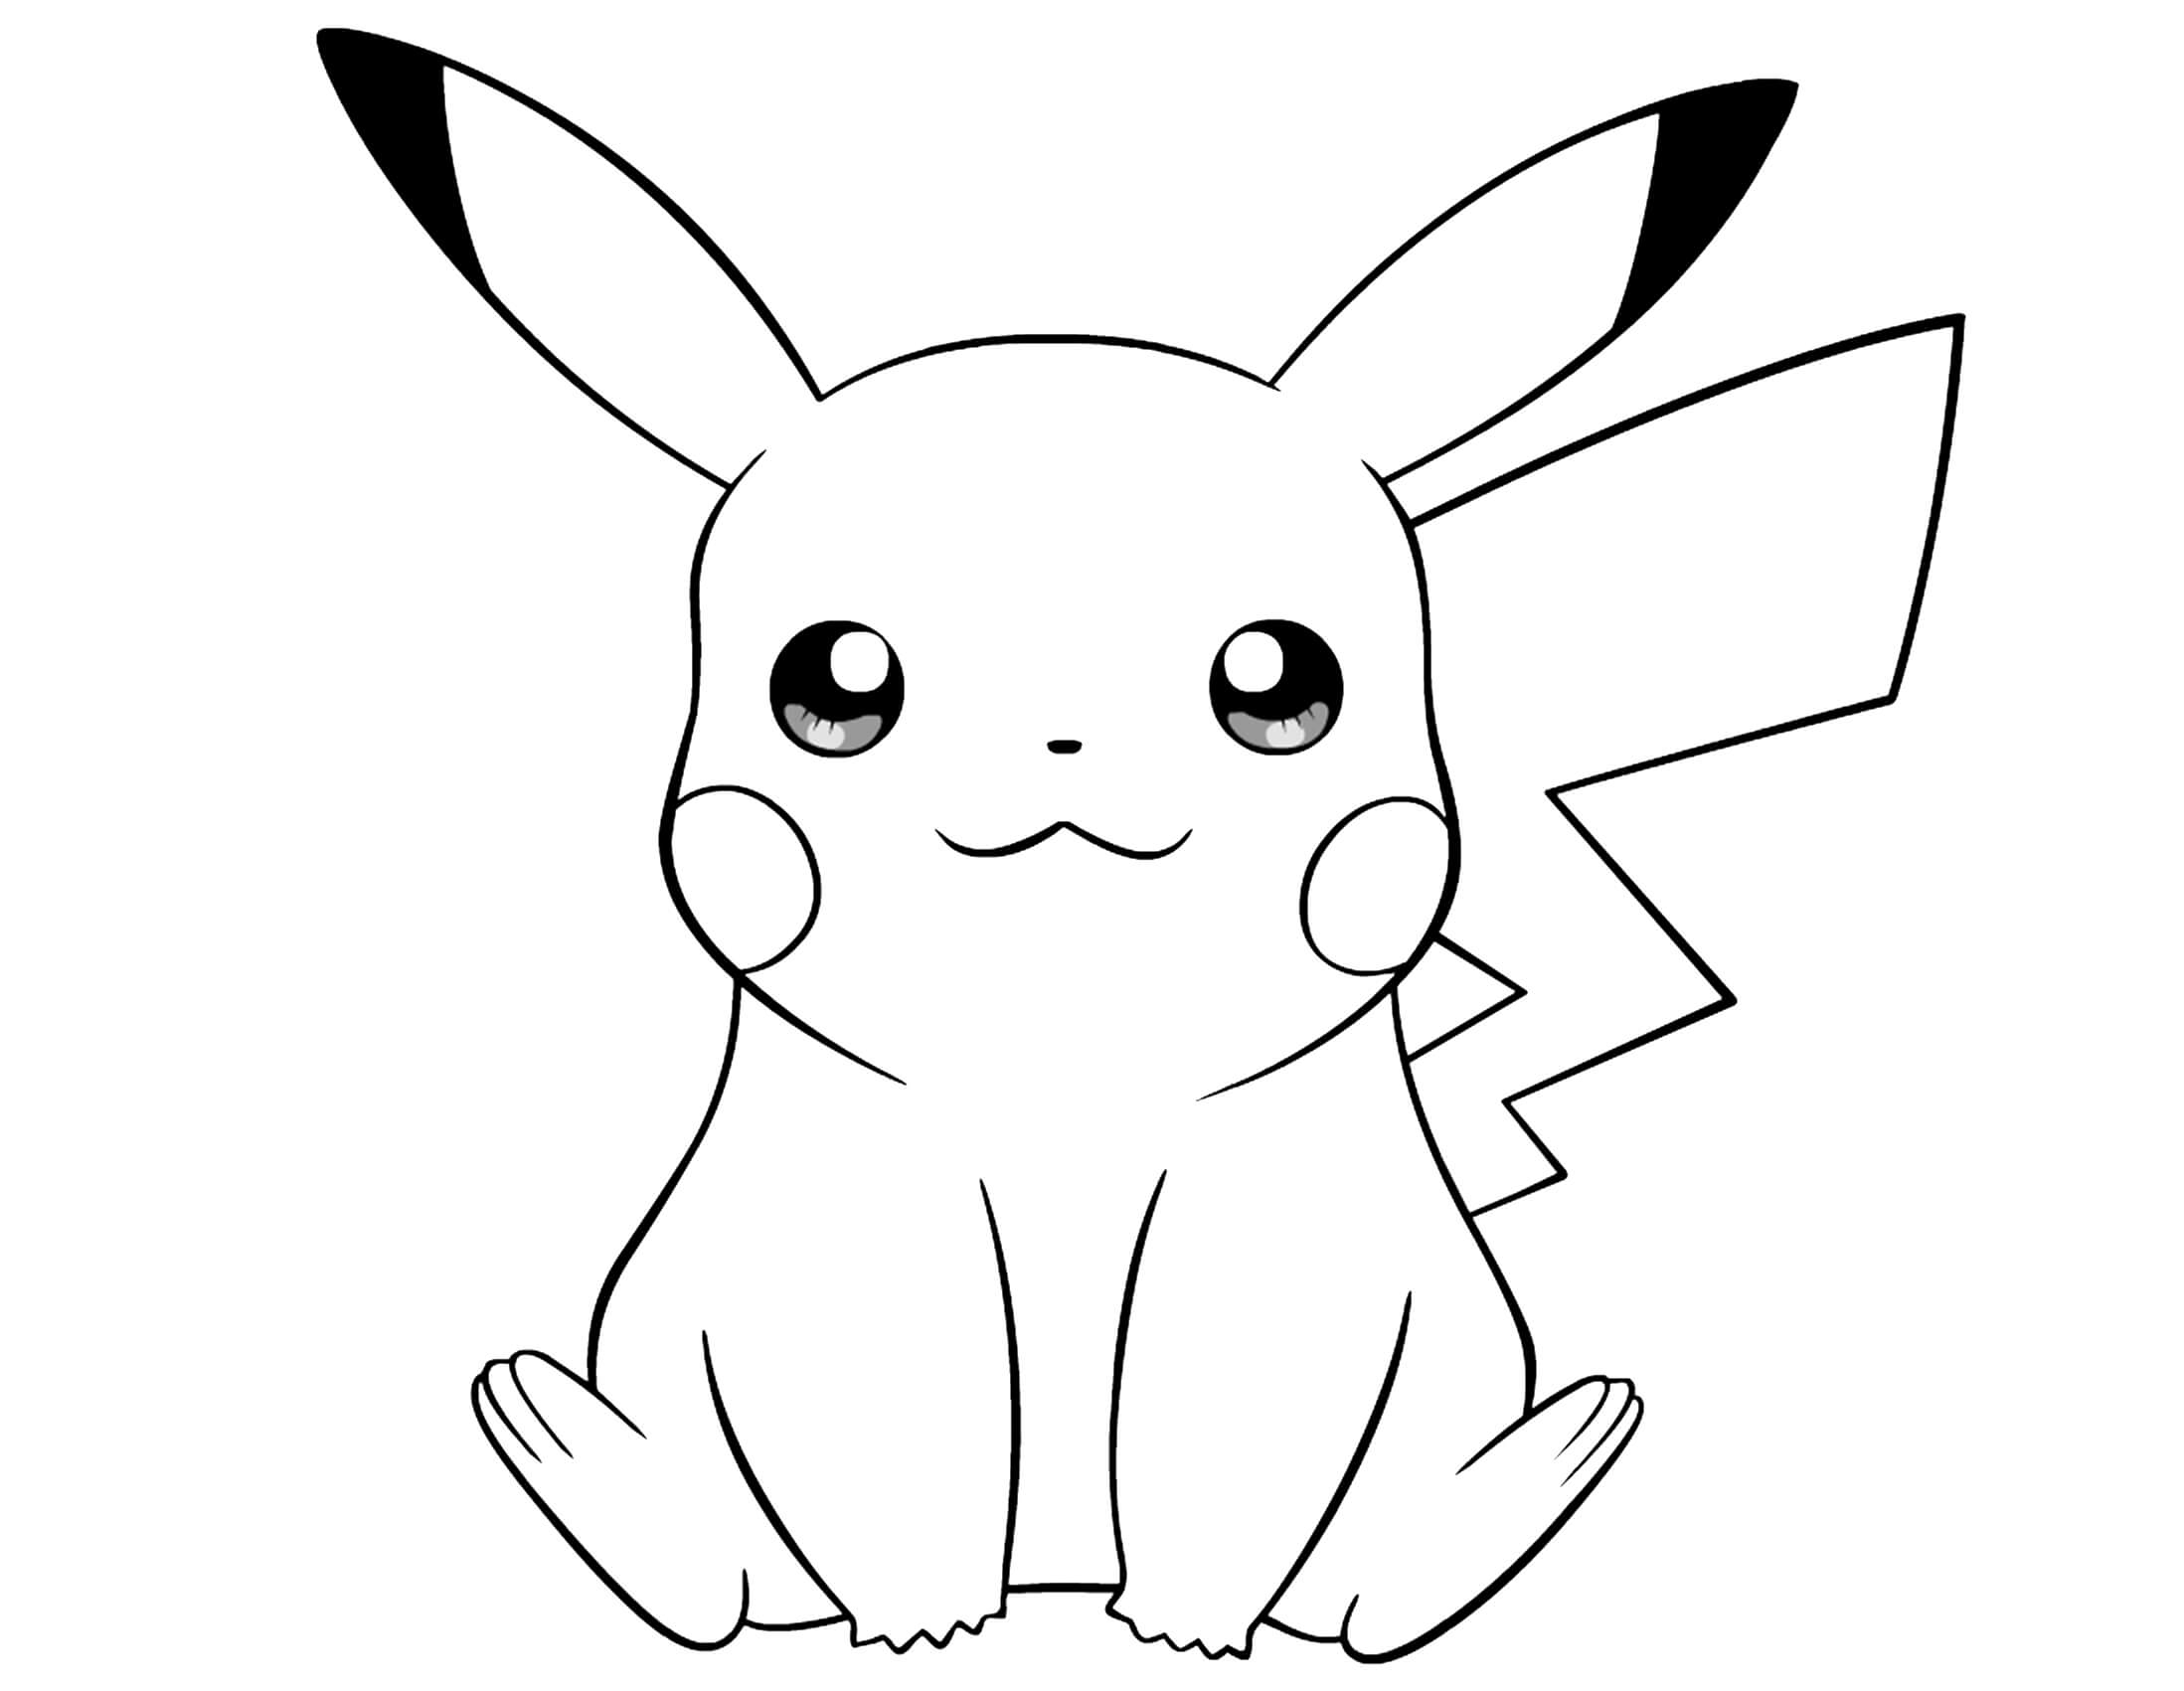 28 Pokemon Coloring Pages Pikachu Images | FREE COLORING PAGES